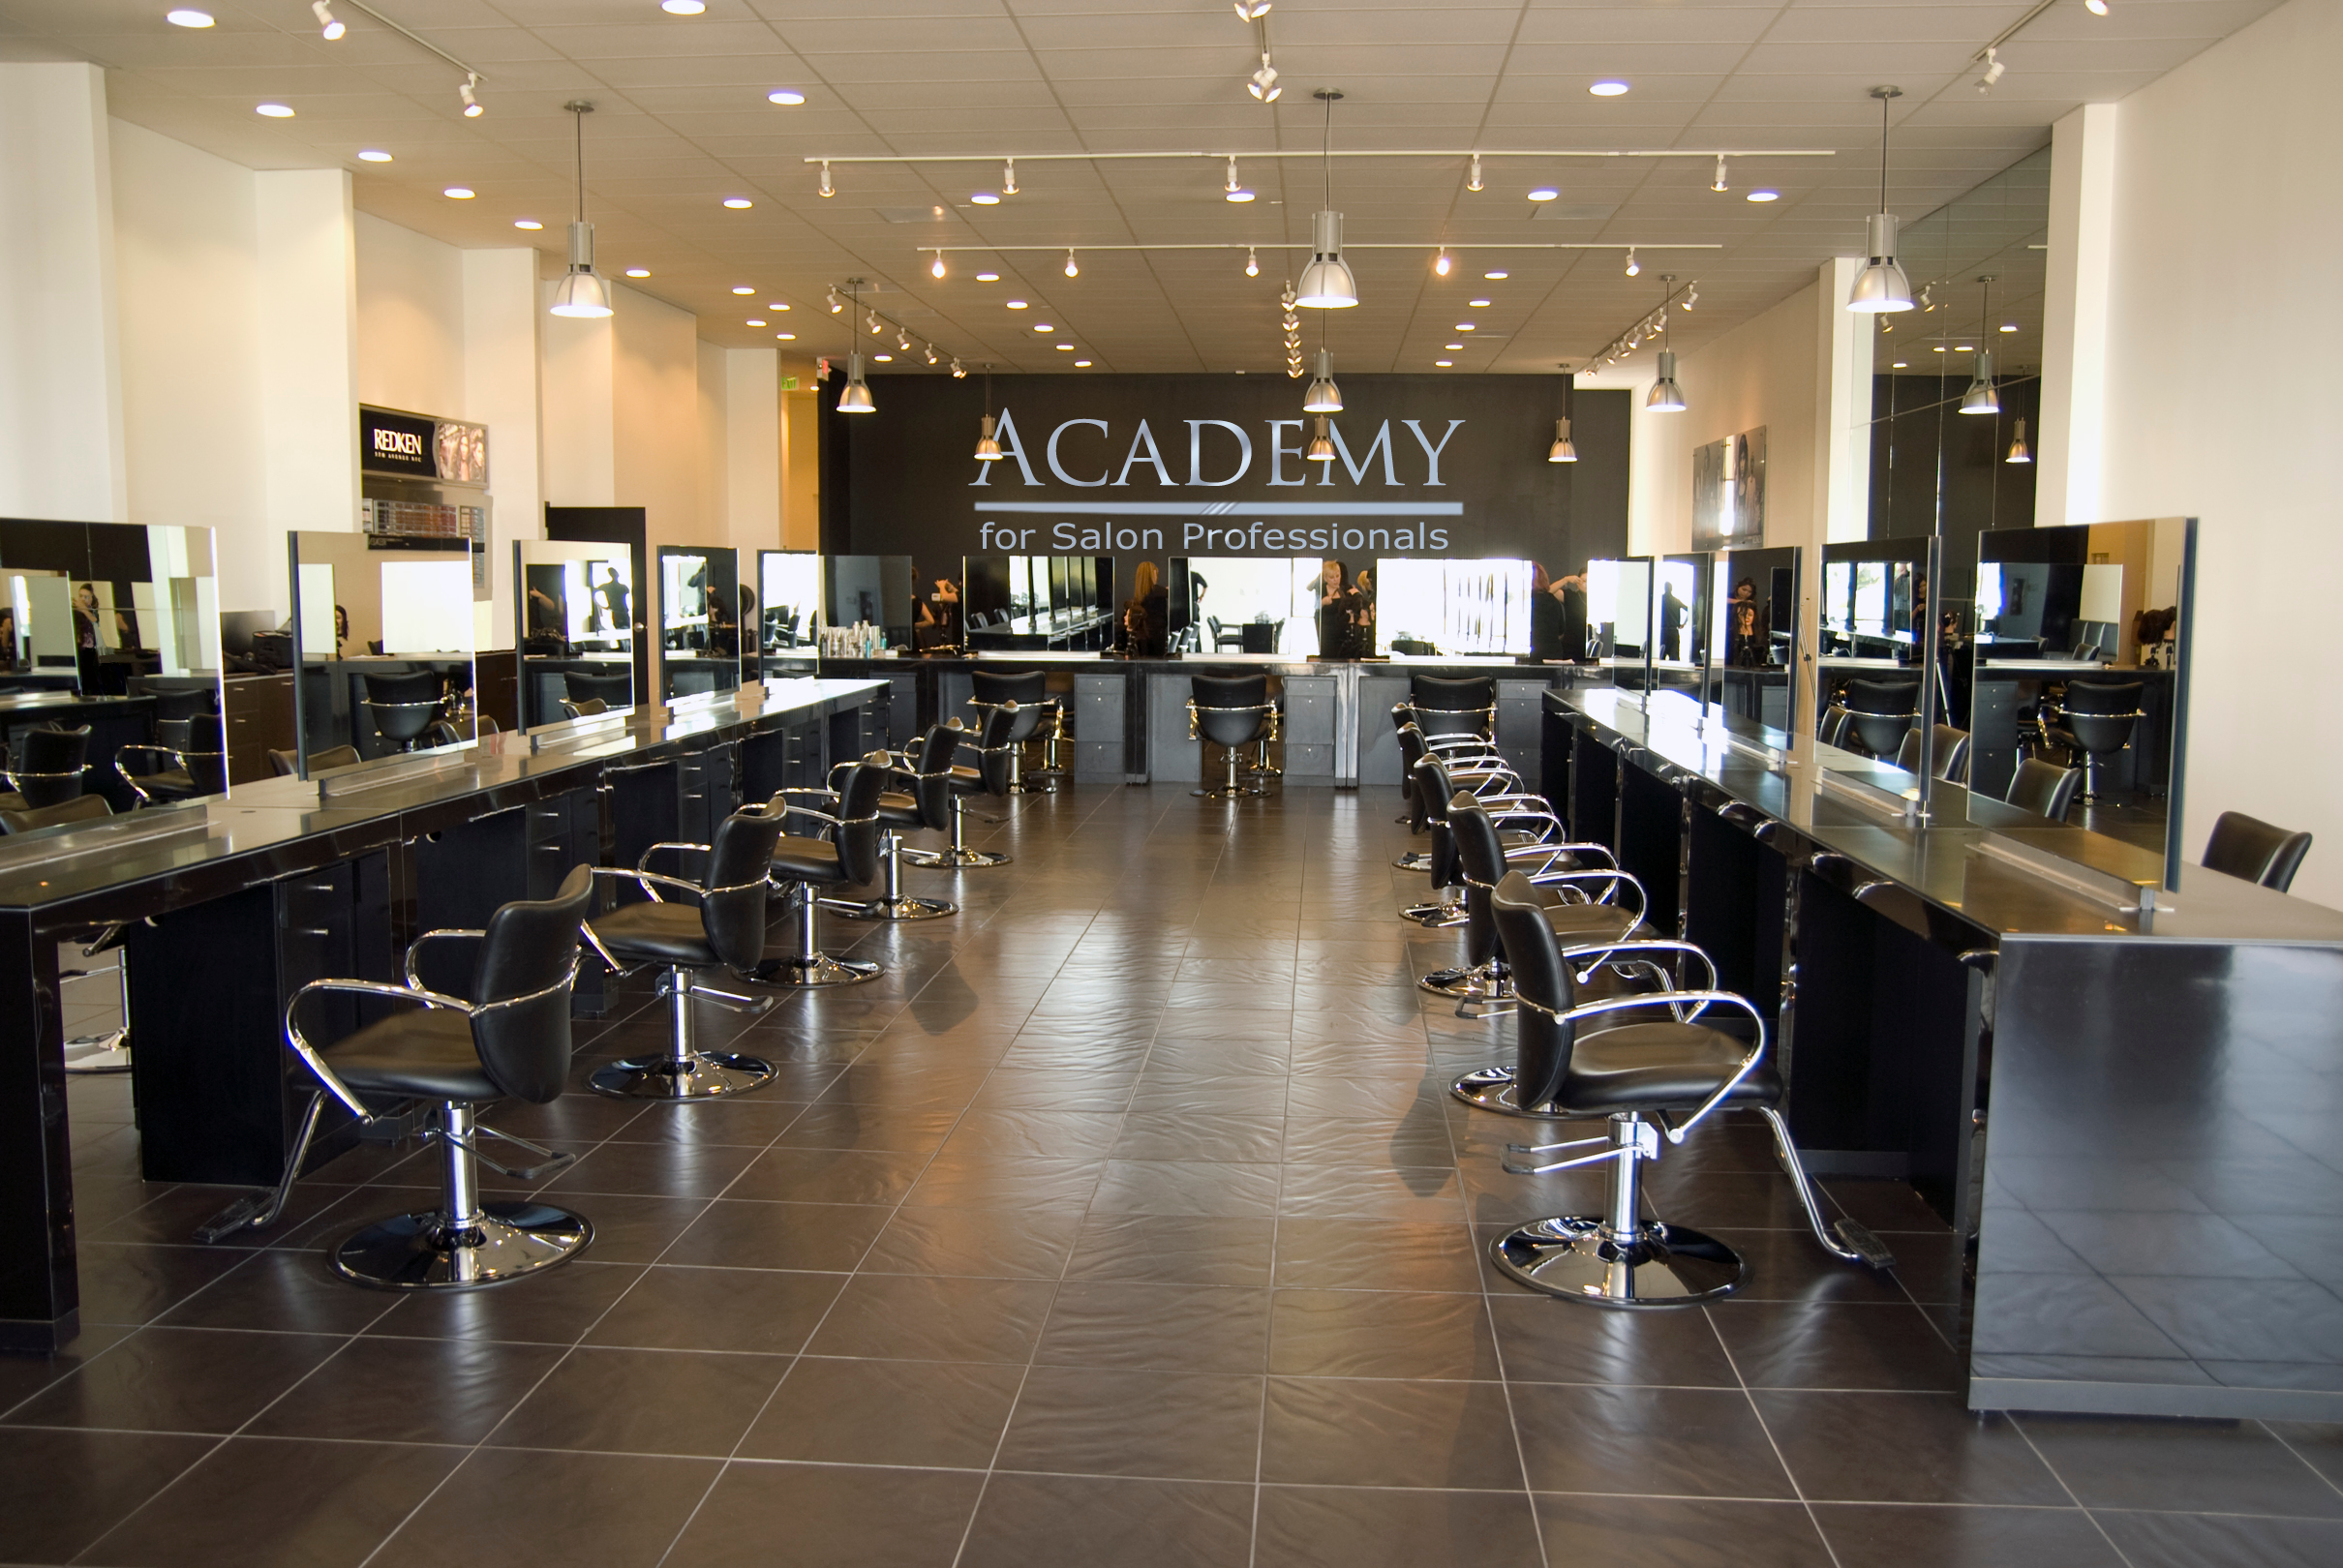 Academy for salon professionals member santa clara ca for Academy salon professionals